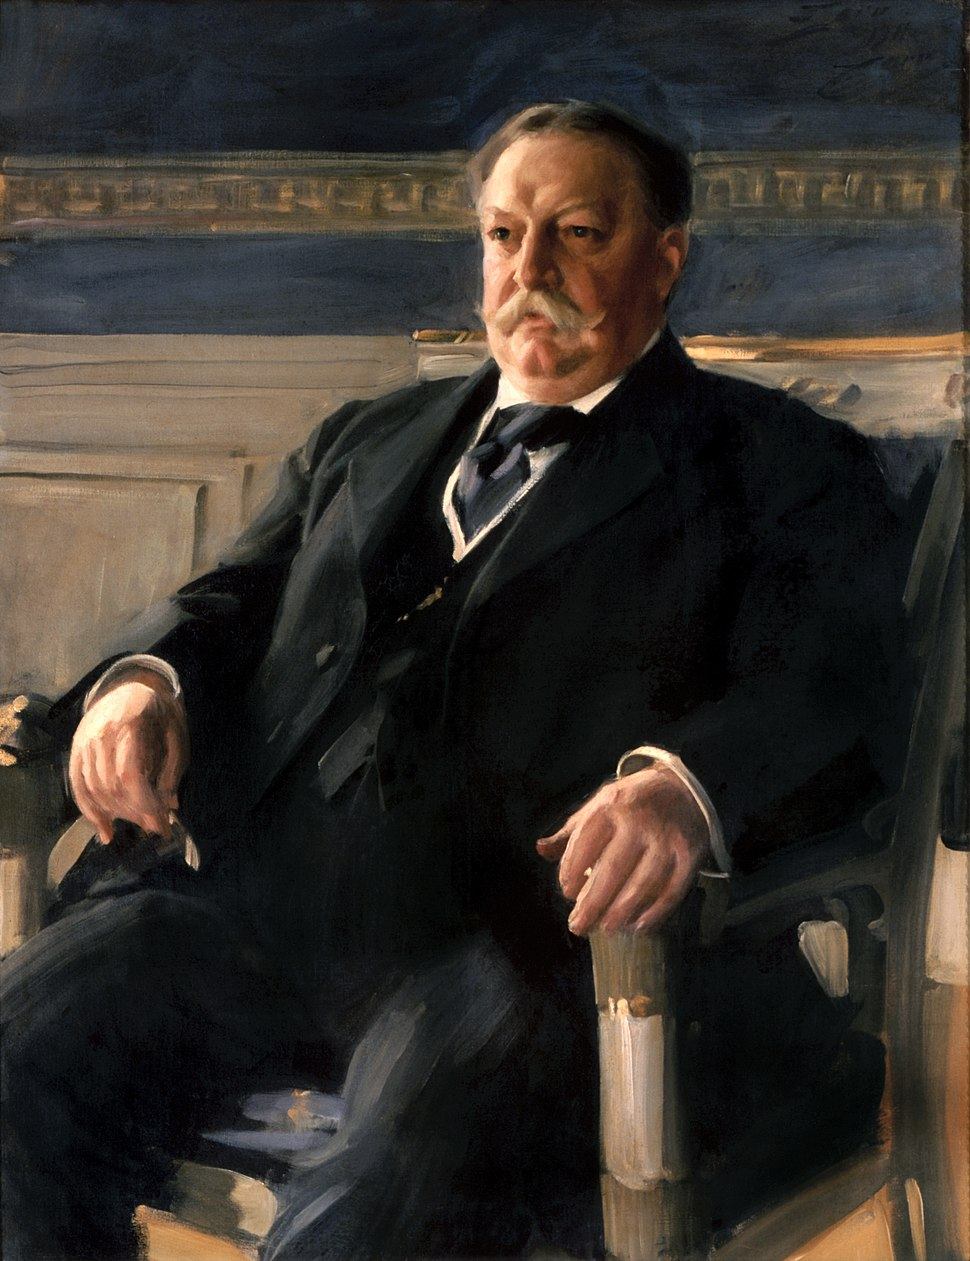 William Howard Taft by Anders Zorn, 1911